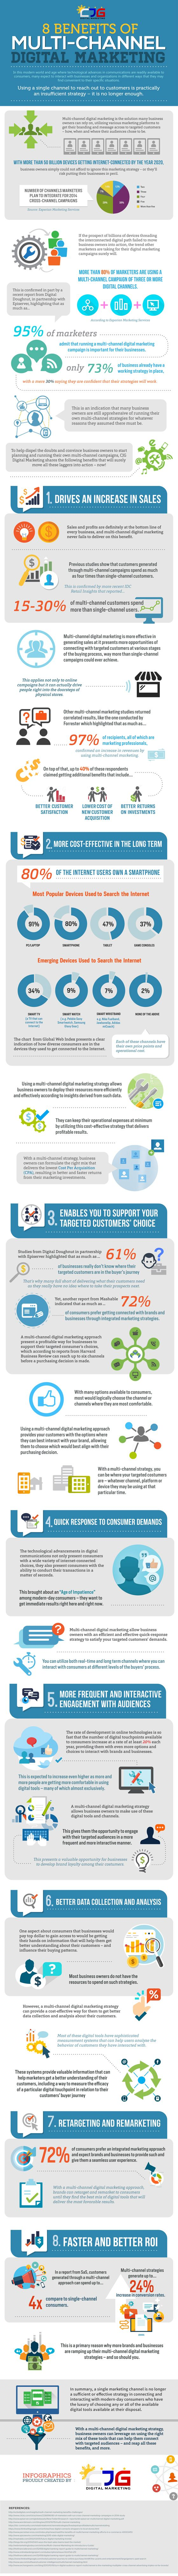 What are the benefits of multi-channel Digital Marketing?